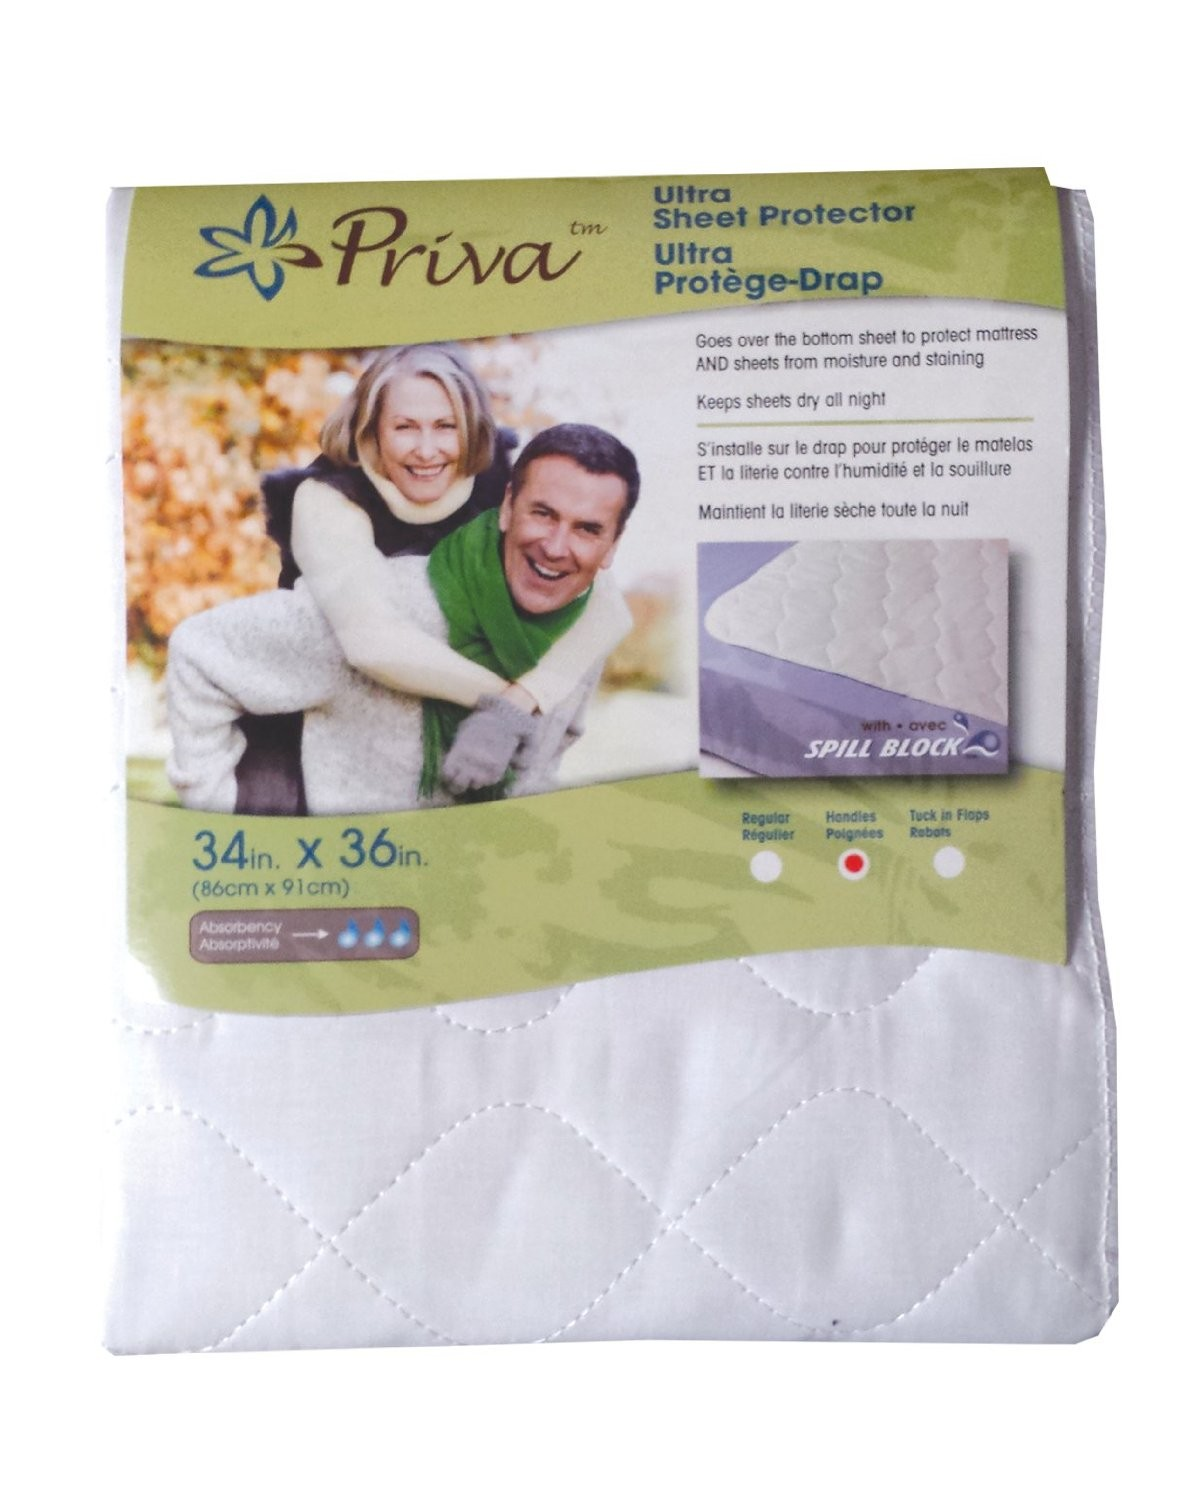 Ultra Waterproof Sheet Protector for Urinary Incontinence with Handles